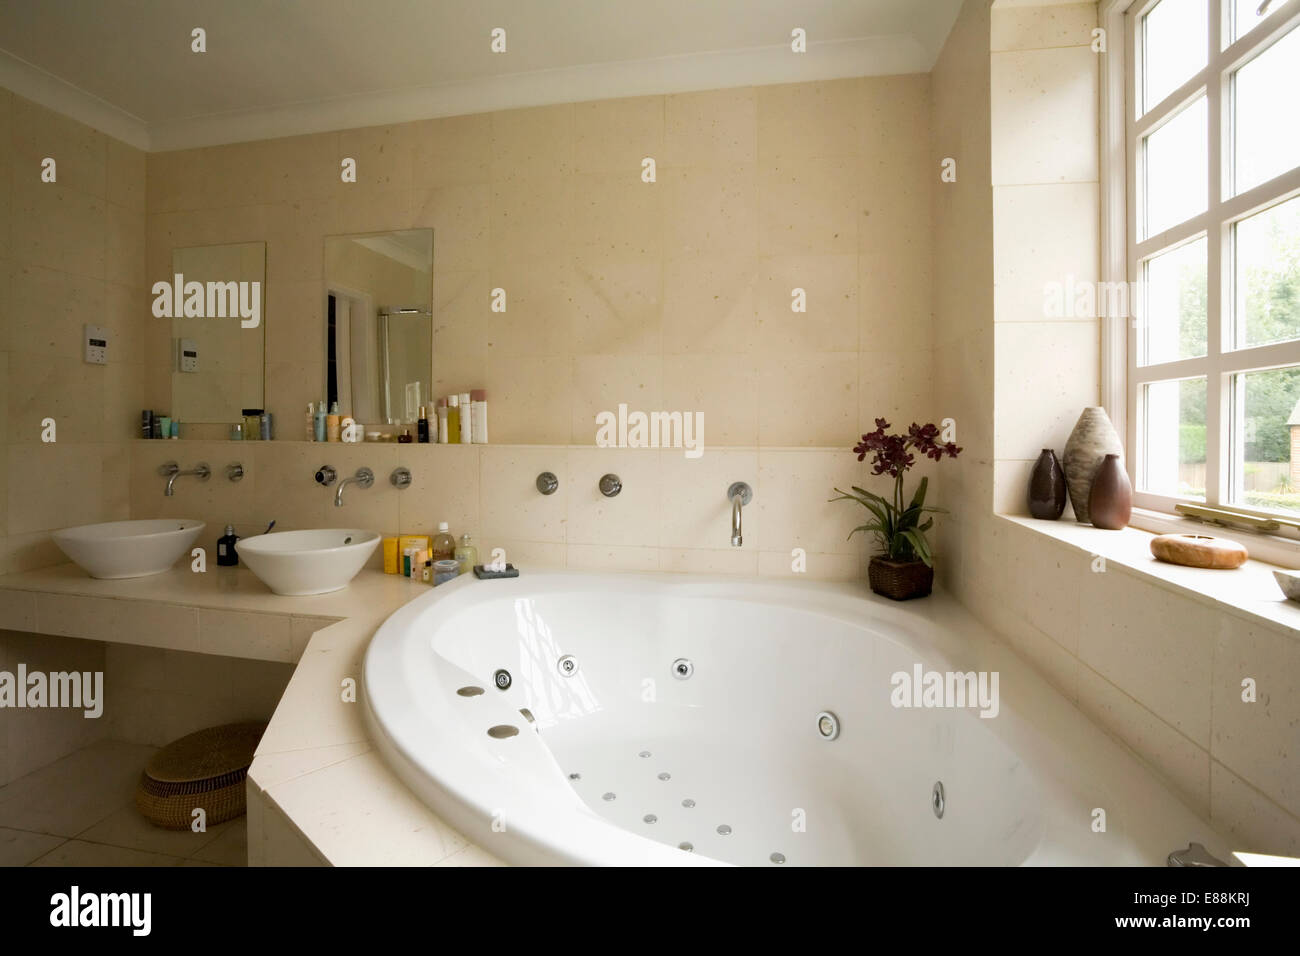 Jacuzzi Baths Stock Photos & Jacuzzi Baths Stock Images - Alamy